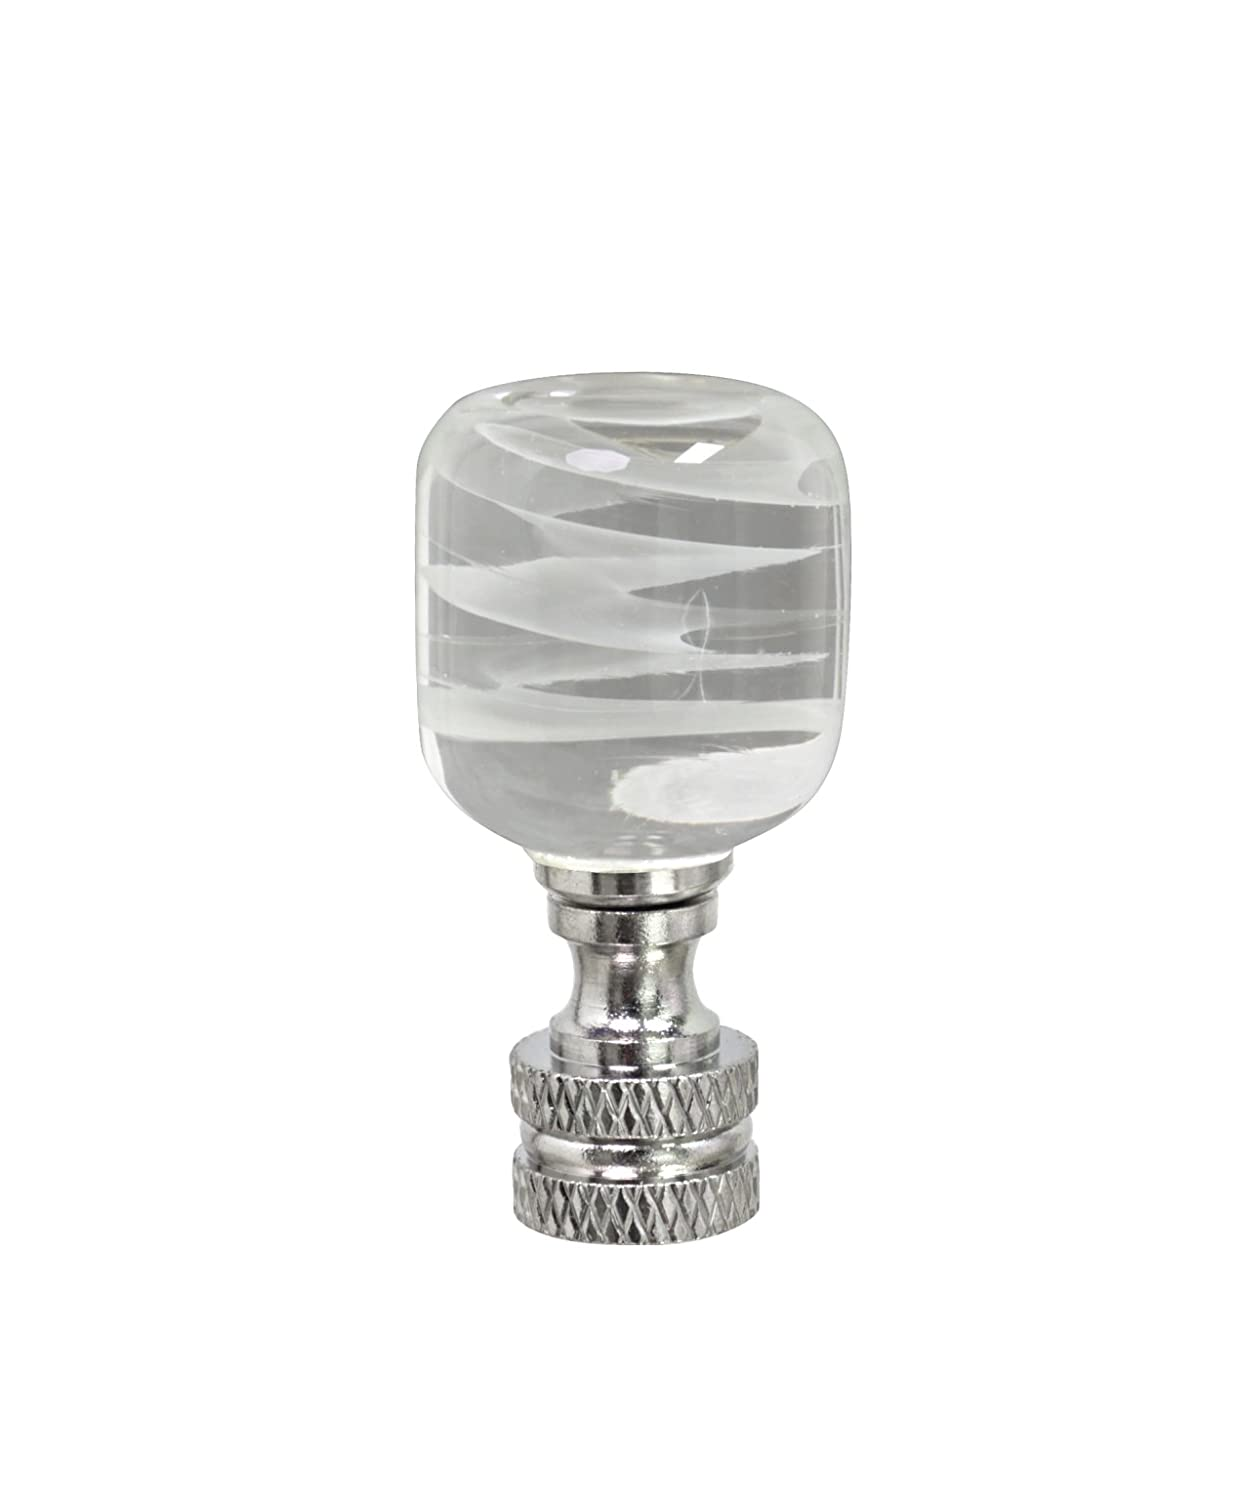 2 Tall Clear /& Yellow 1 Pack Aspen Creative 24012 Clear with Yellow Line Glass Lamp Finial in Nickel Finish 1 Pack Clear /& Yellow 2 Tall